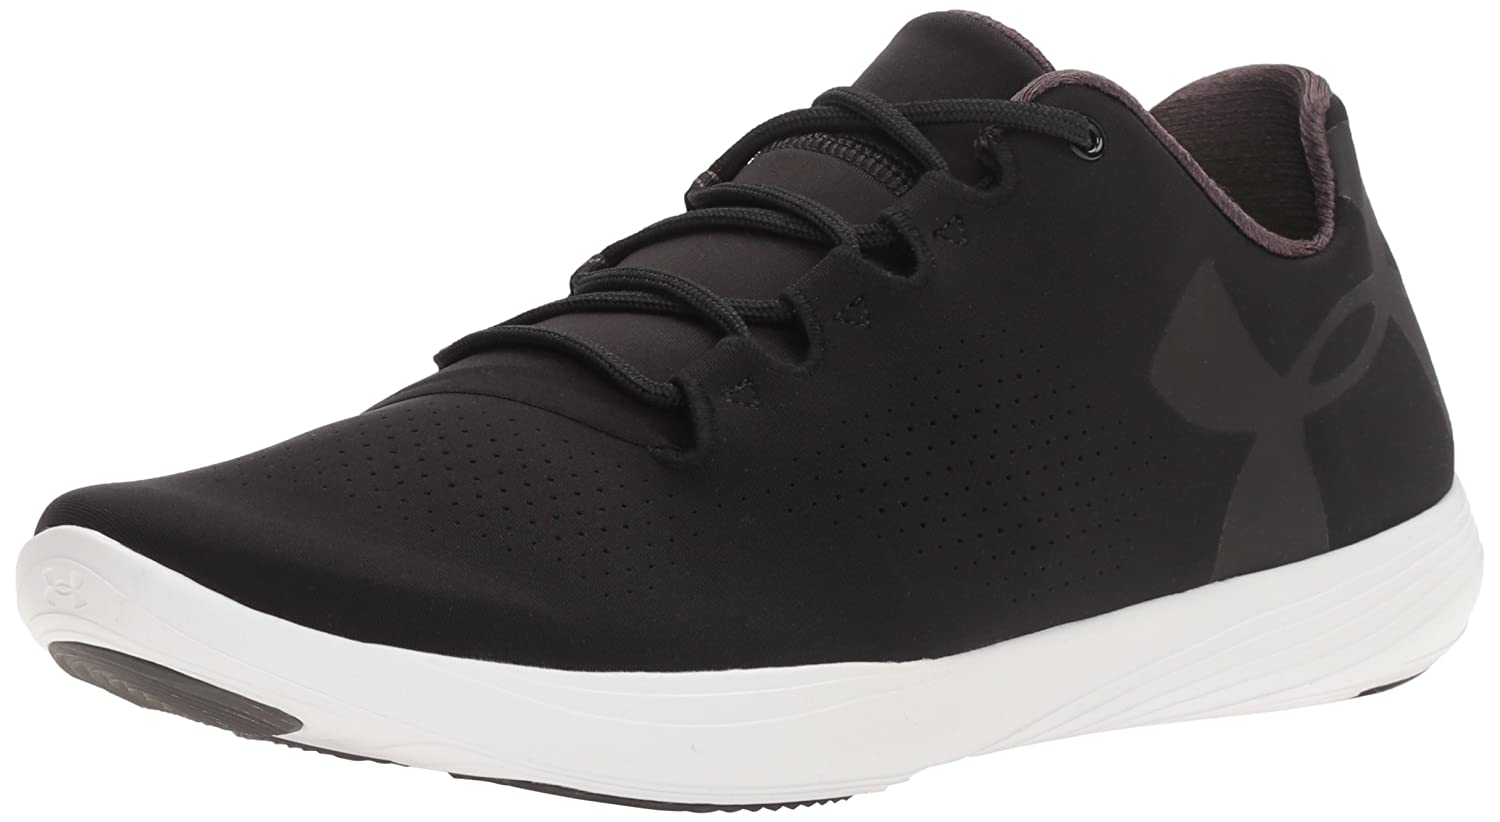 Under Armour Women's Street Precision Low Sneaker B0182YJIVM 9.5 M US|Black (001)/White